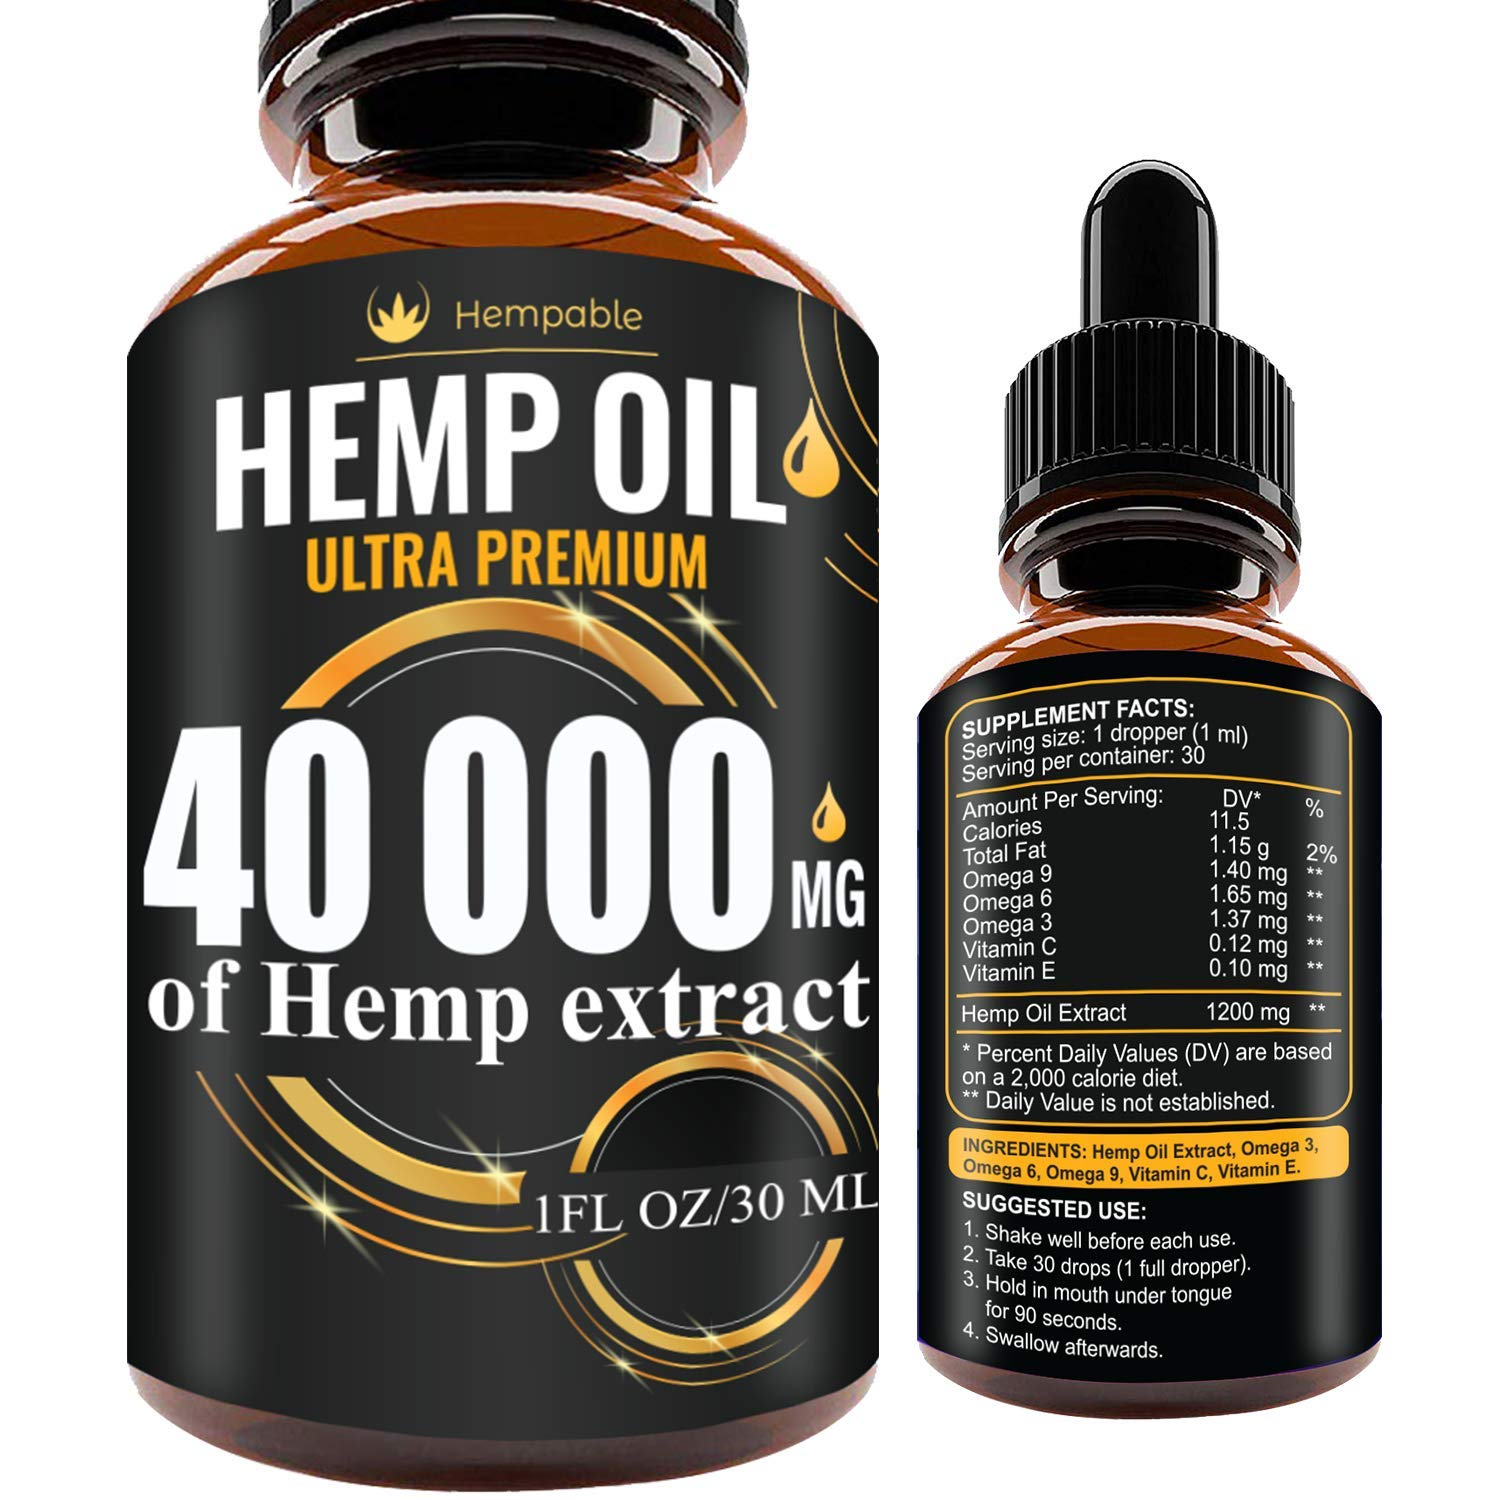 Hemp Oil Drops 40 000 mg, Co2 Extracted, Made in USA, Help Reduce Stress, Anxiety and Pain, 100% Natural Ingredients, Vegan Friendly, GMO Free by Hempable